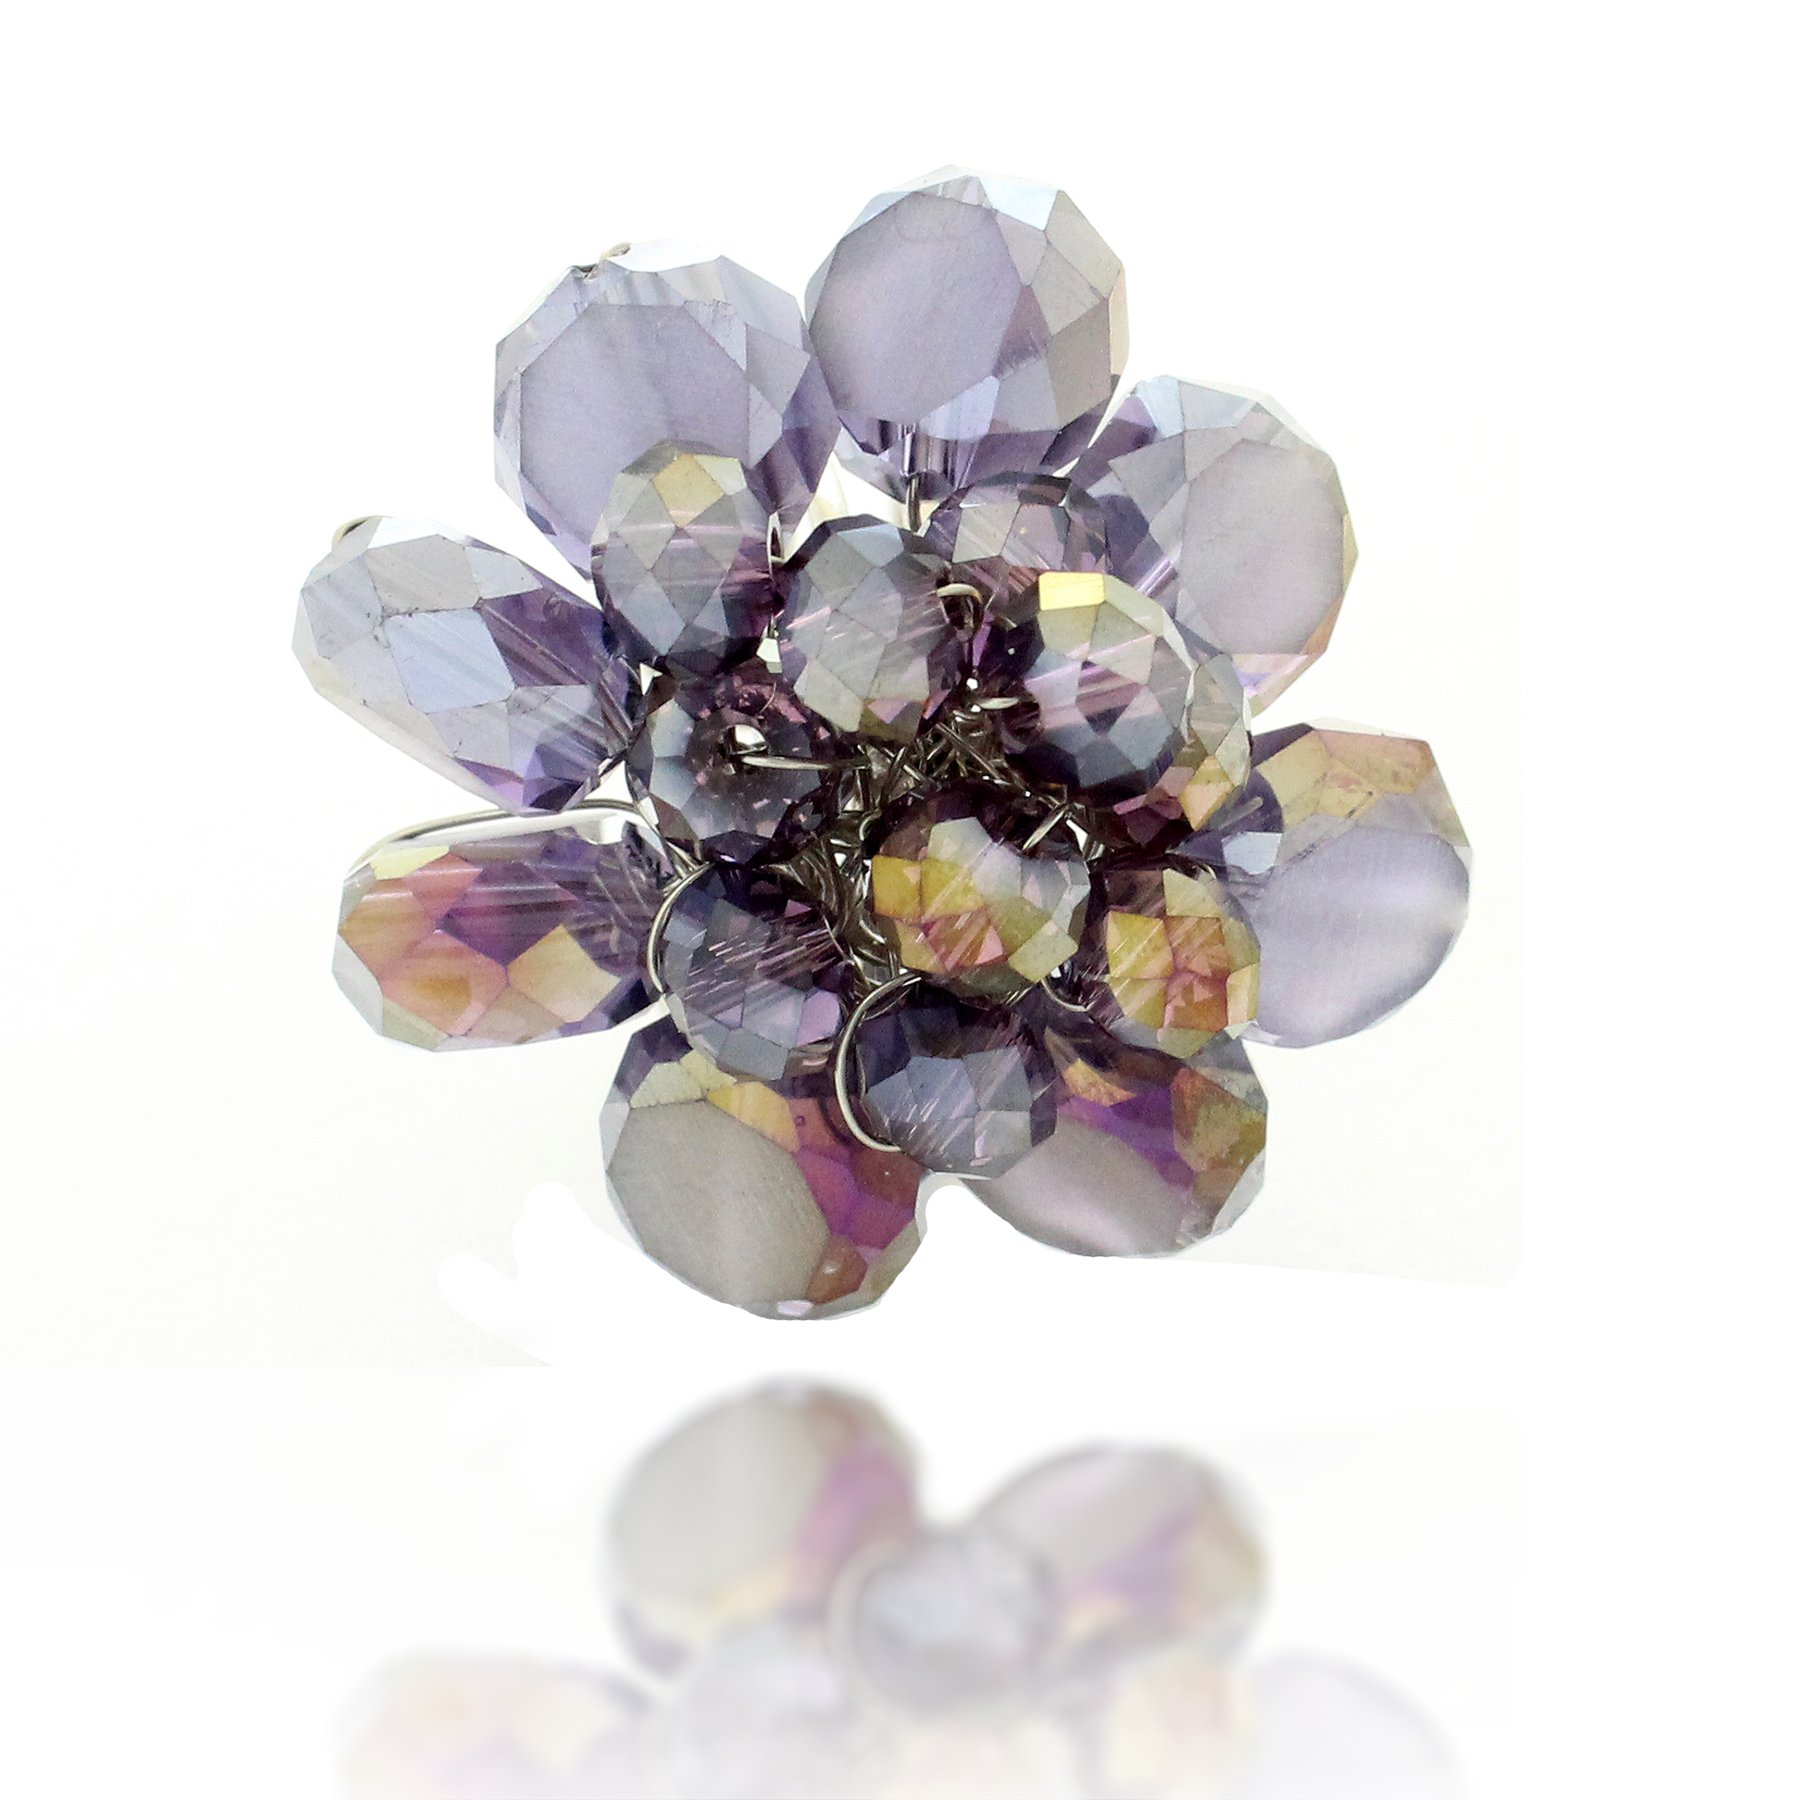 Chuvora Zinc Handwired Round Floral Purple Crystal Glass Beads Adjustable Ring